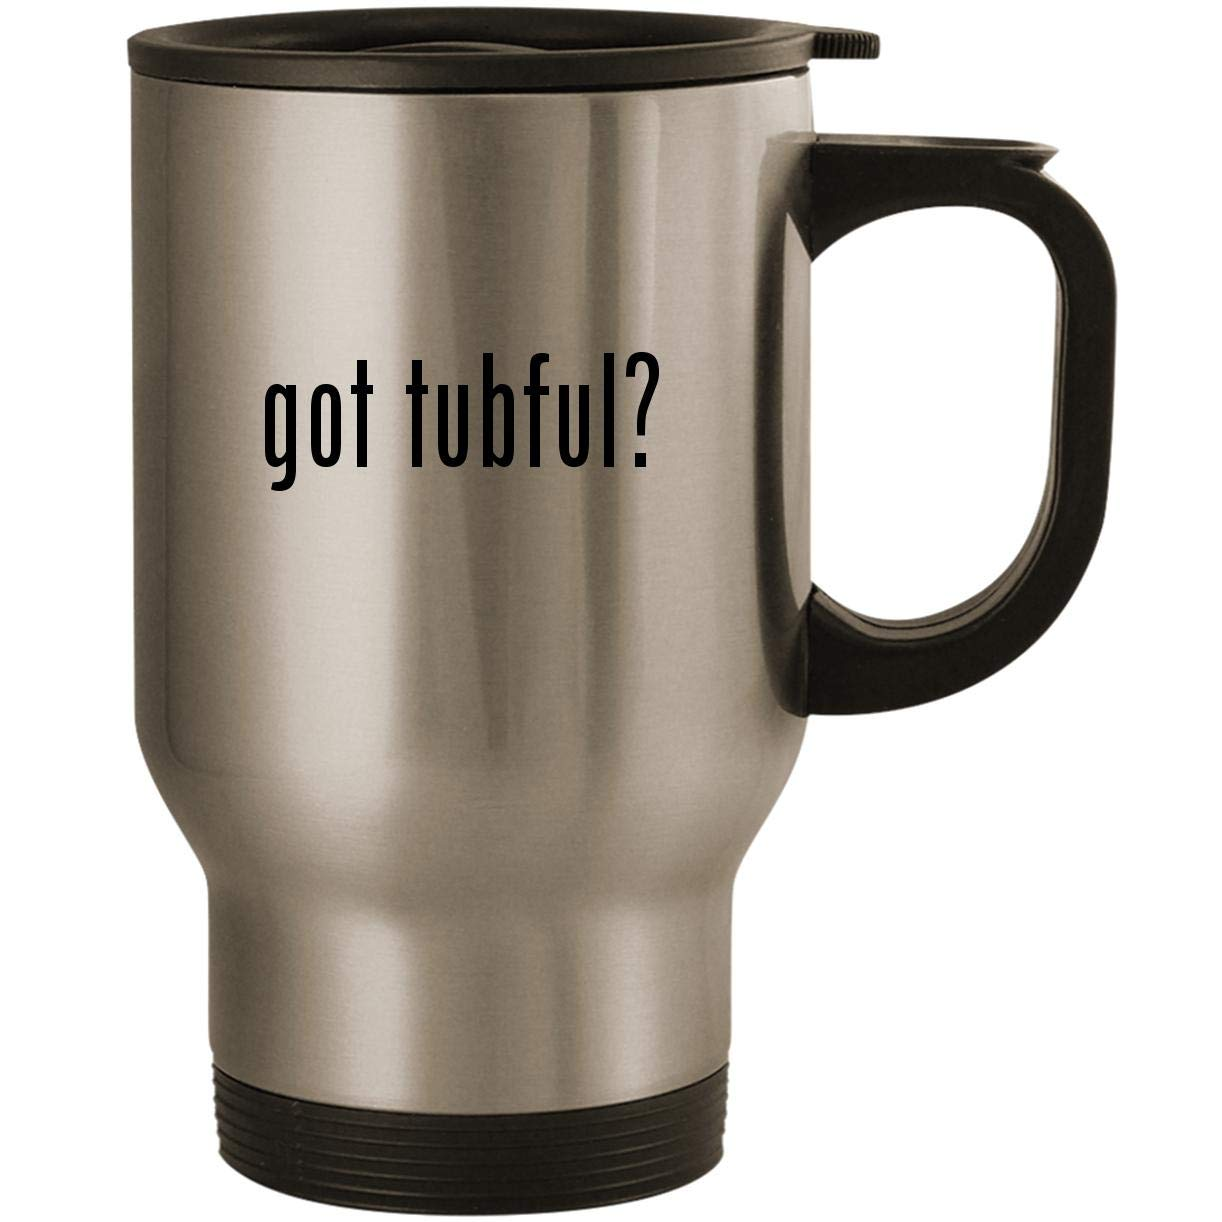 got tubful? - Stainless Steel 14oz Road Ready Travel Mug, Silver